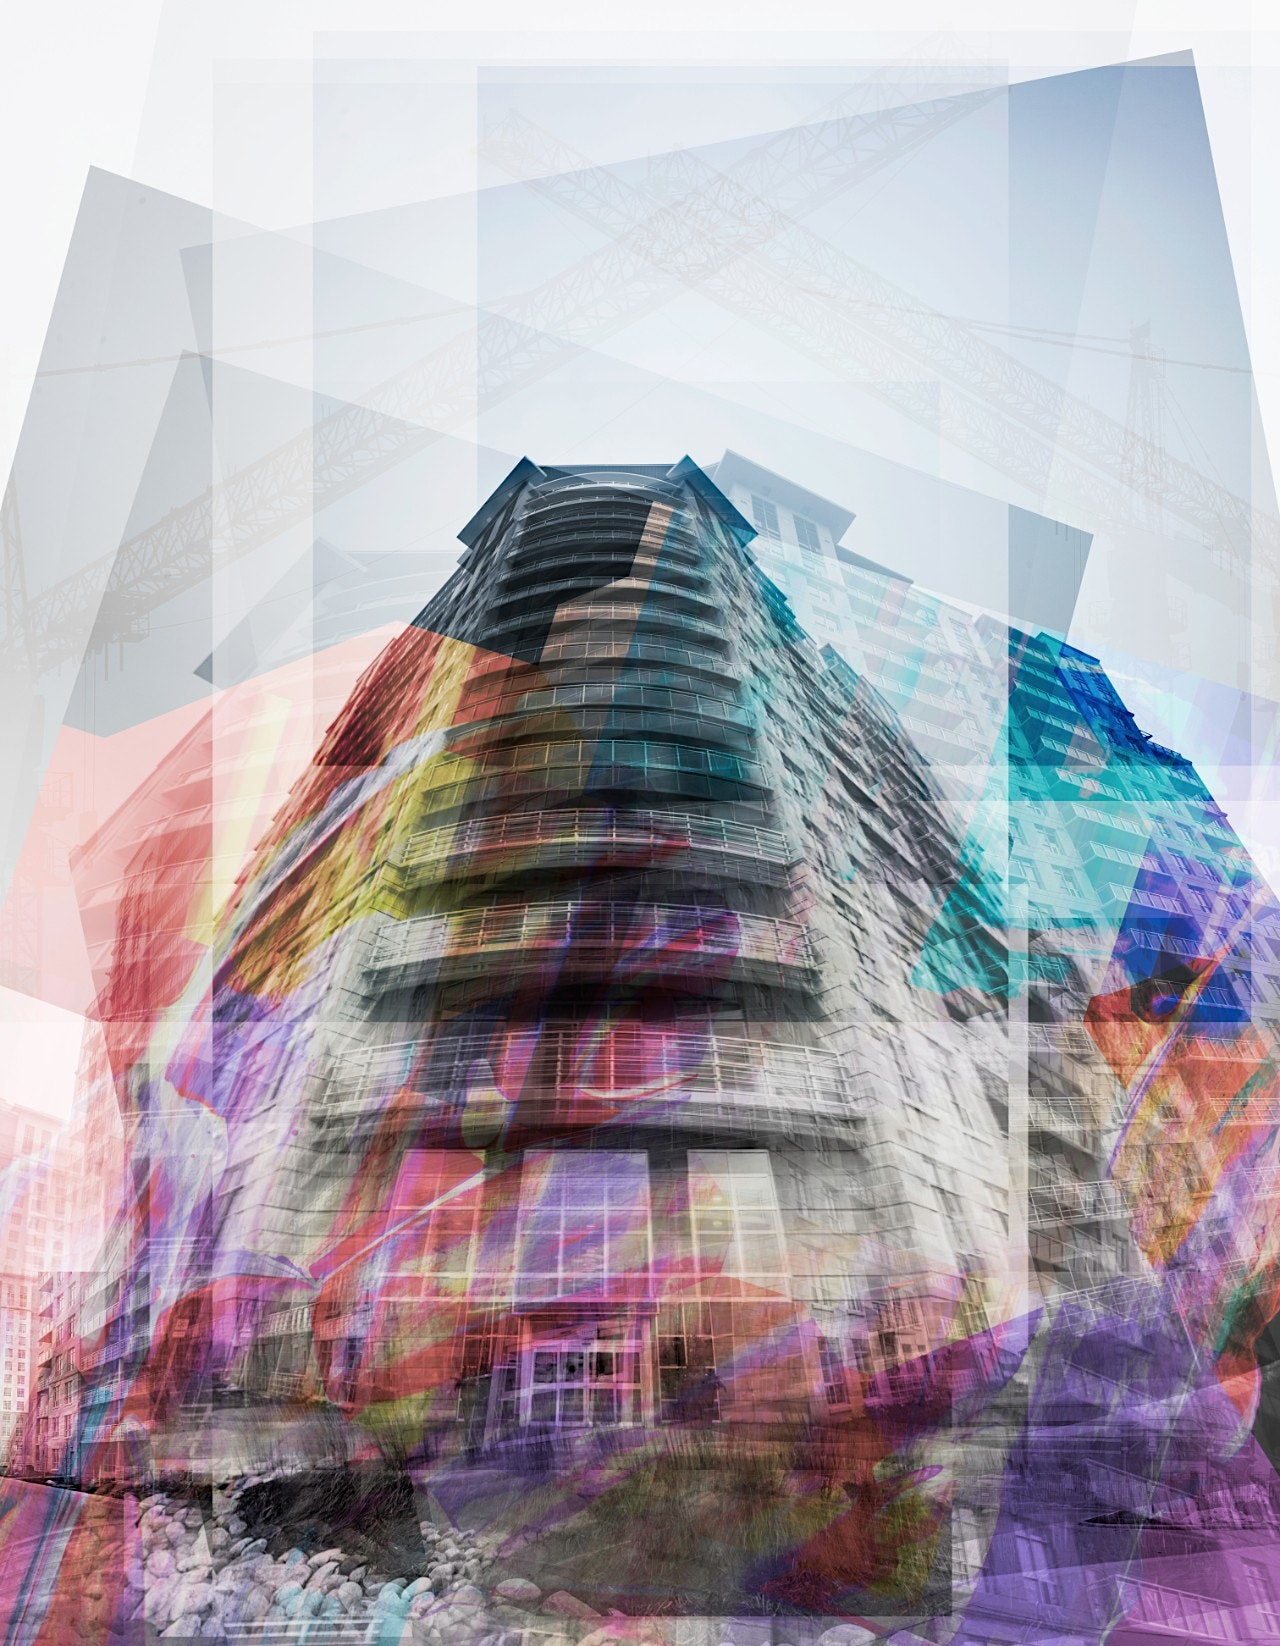 Abstract Architecture Art using Pomeroy Building in London Ontario by Scott Webb